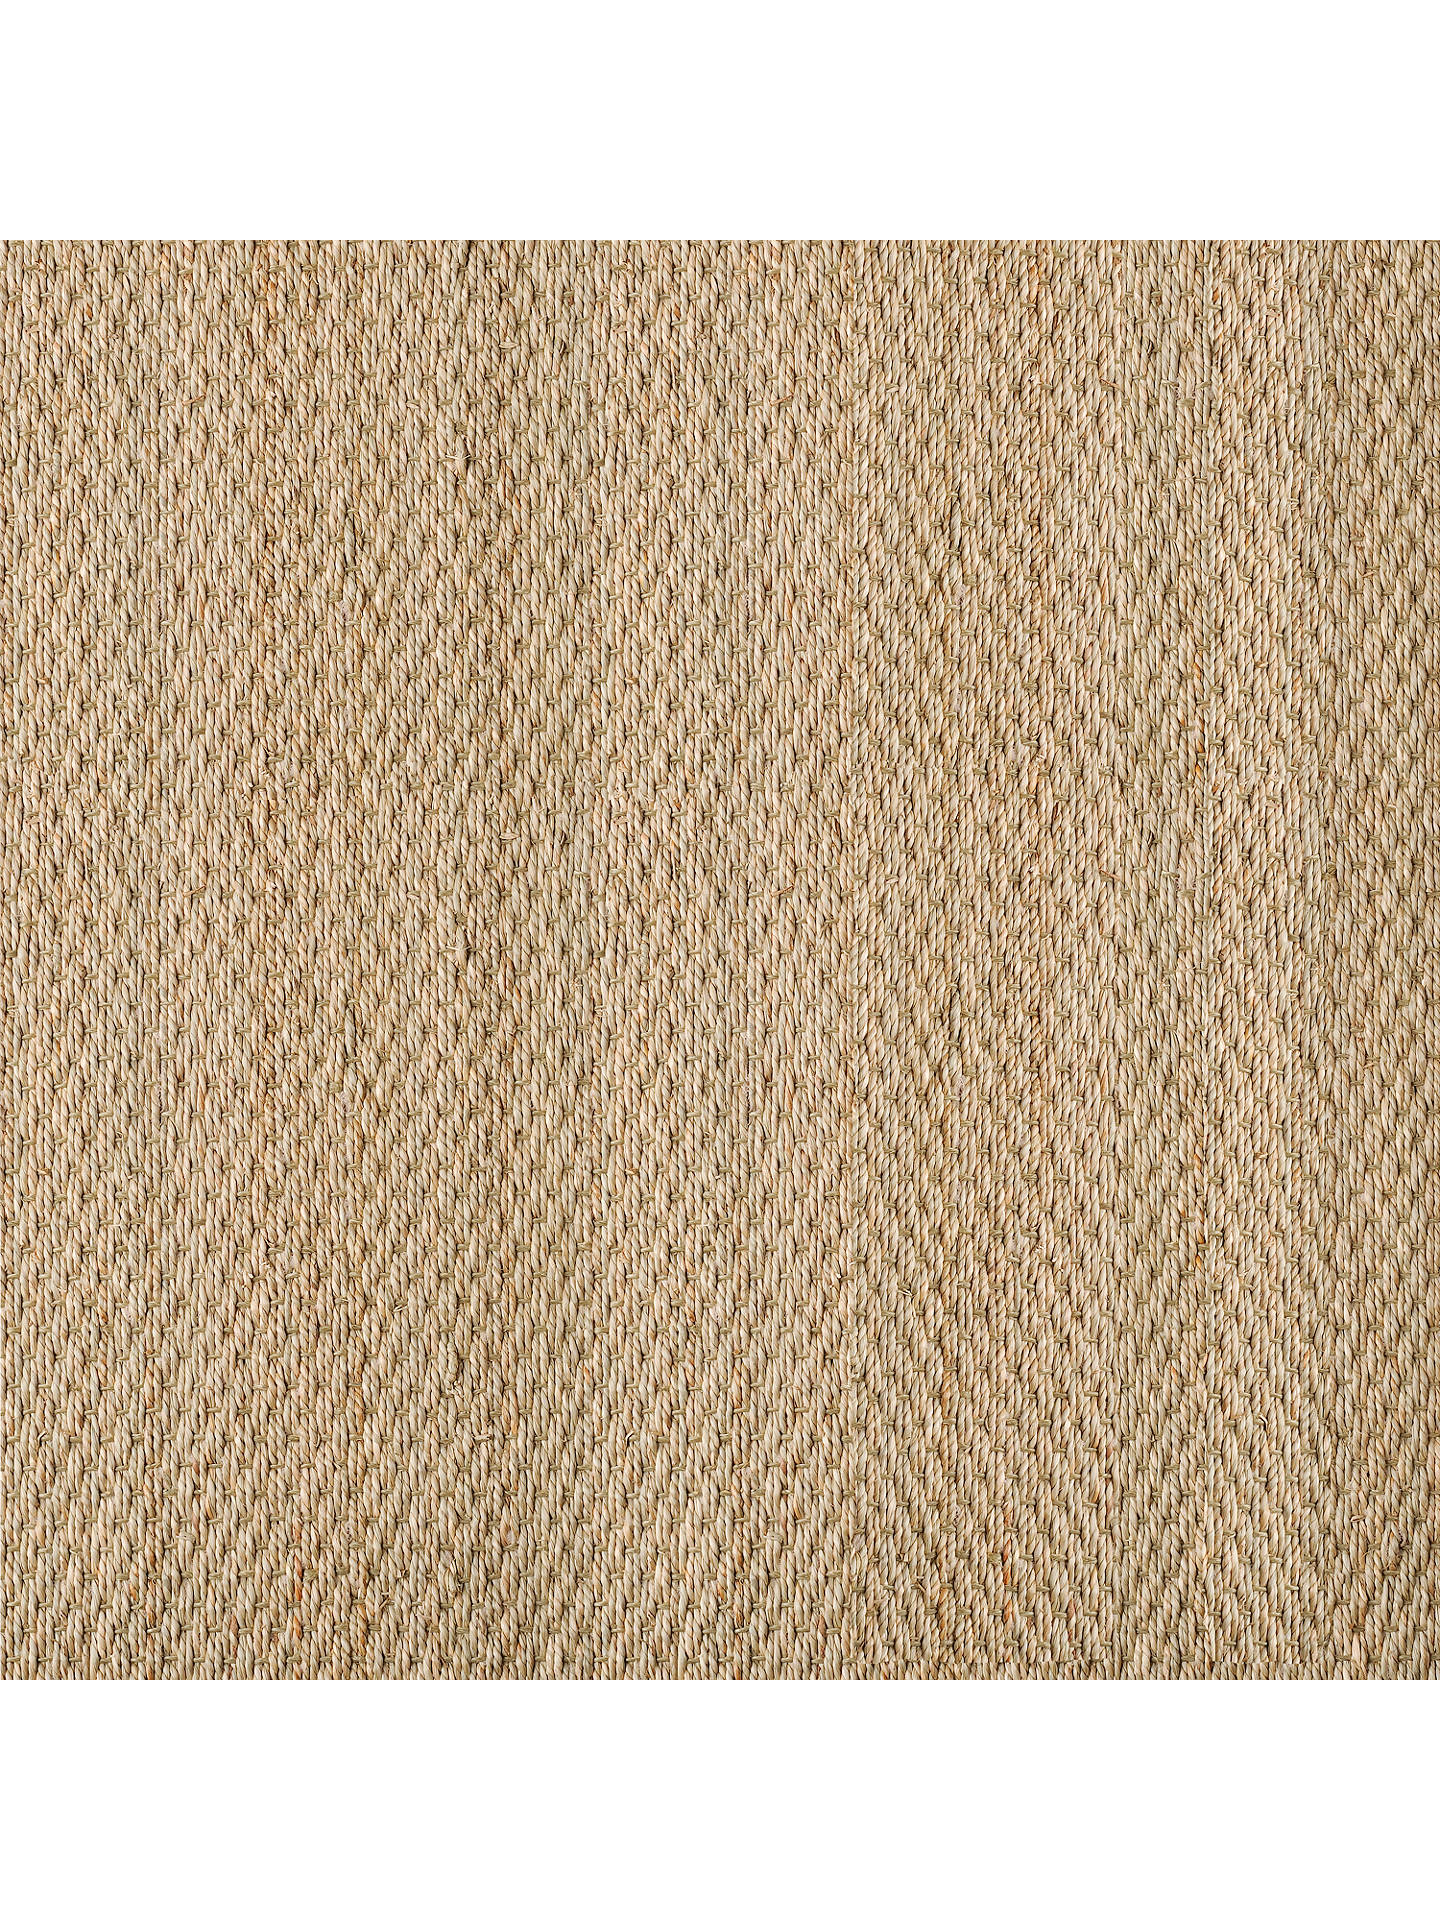 Alternative Flooring Seagr Flatweave Carpet Natural